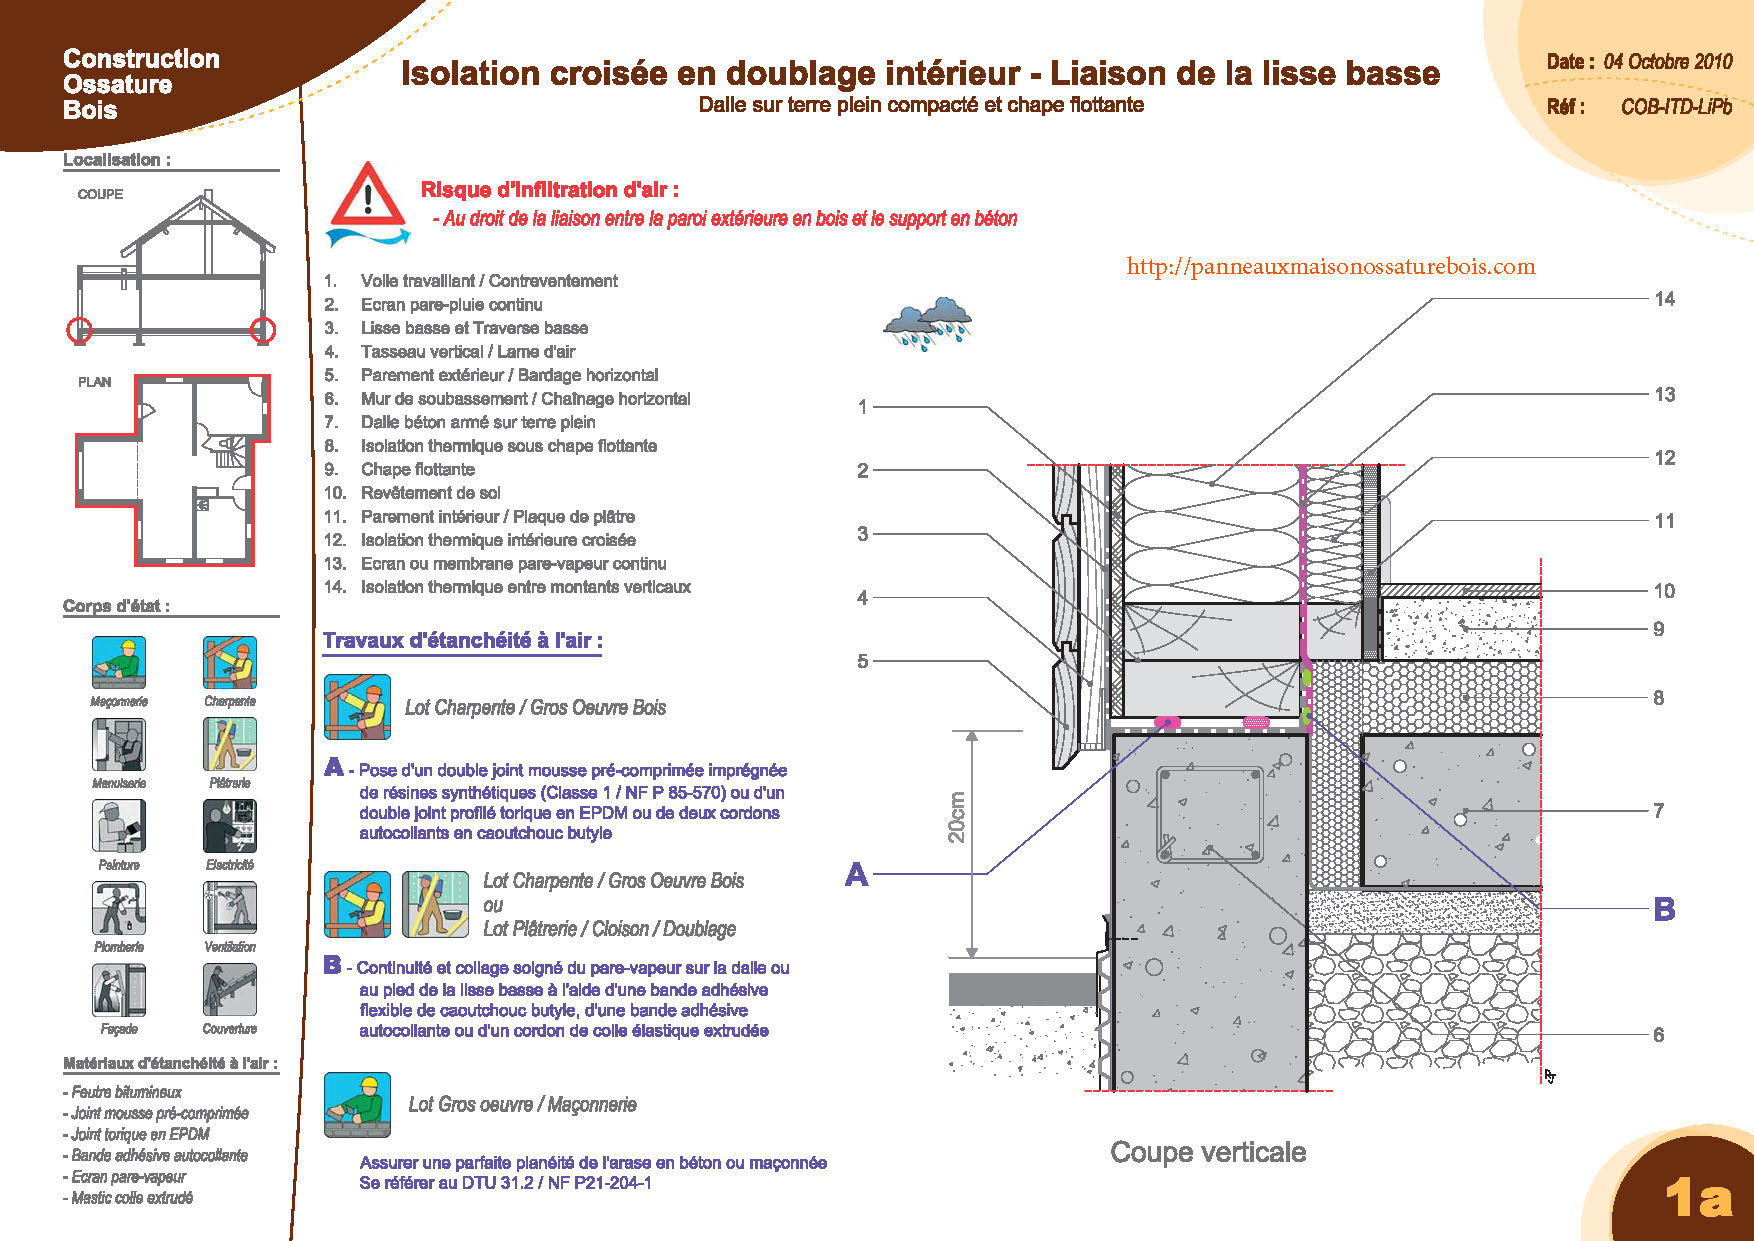 coupes construtions ossature bois complets_Page_06